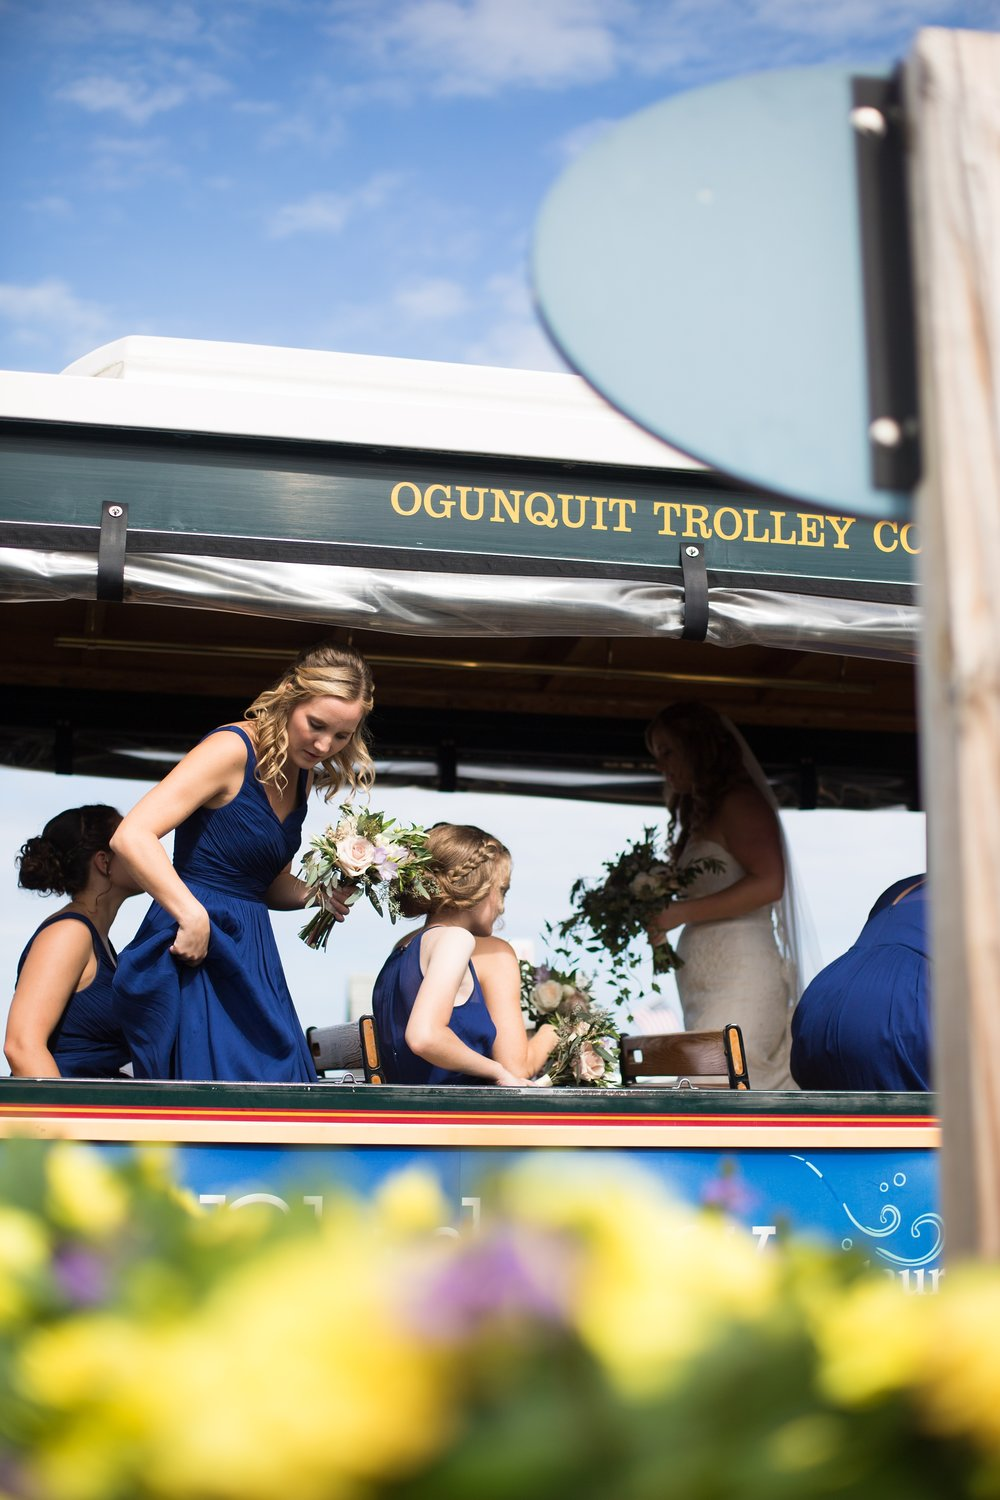 Ogunquit trolley Company